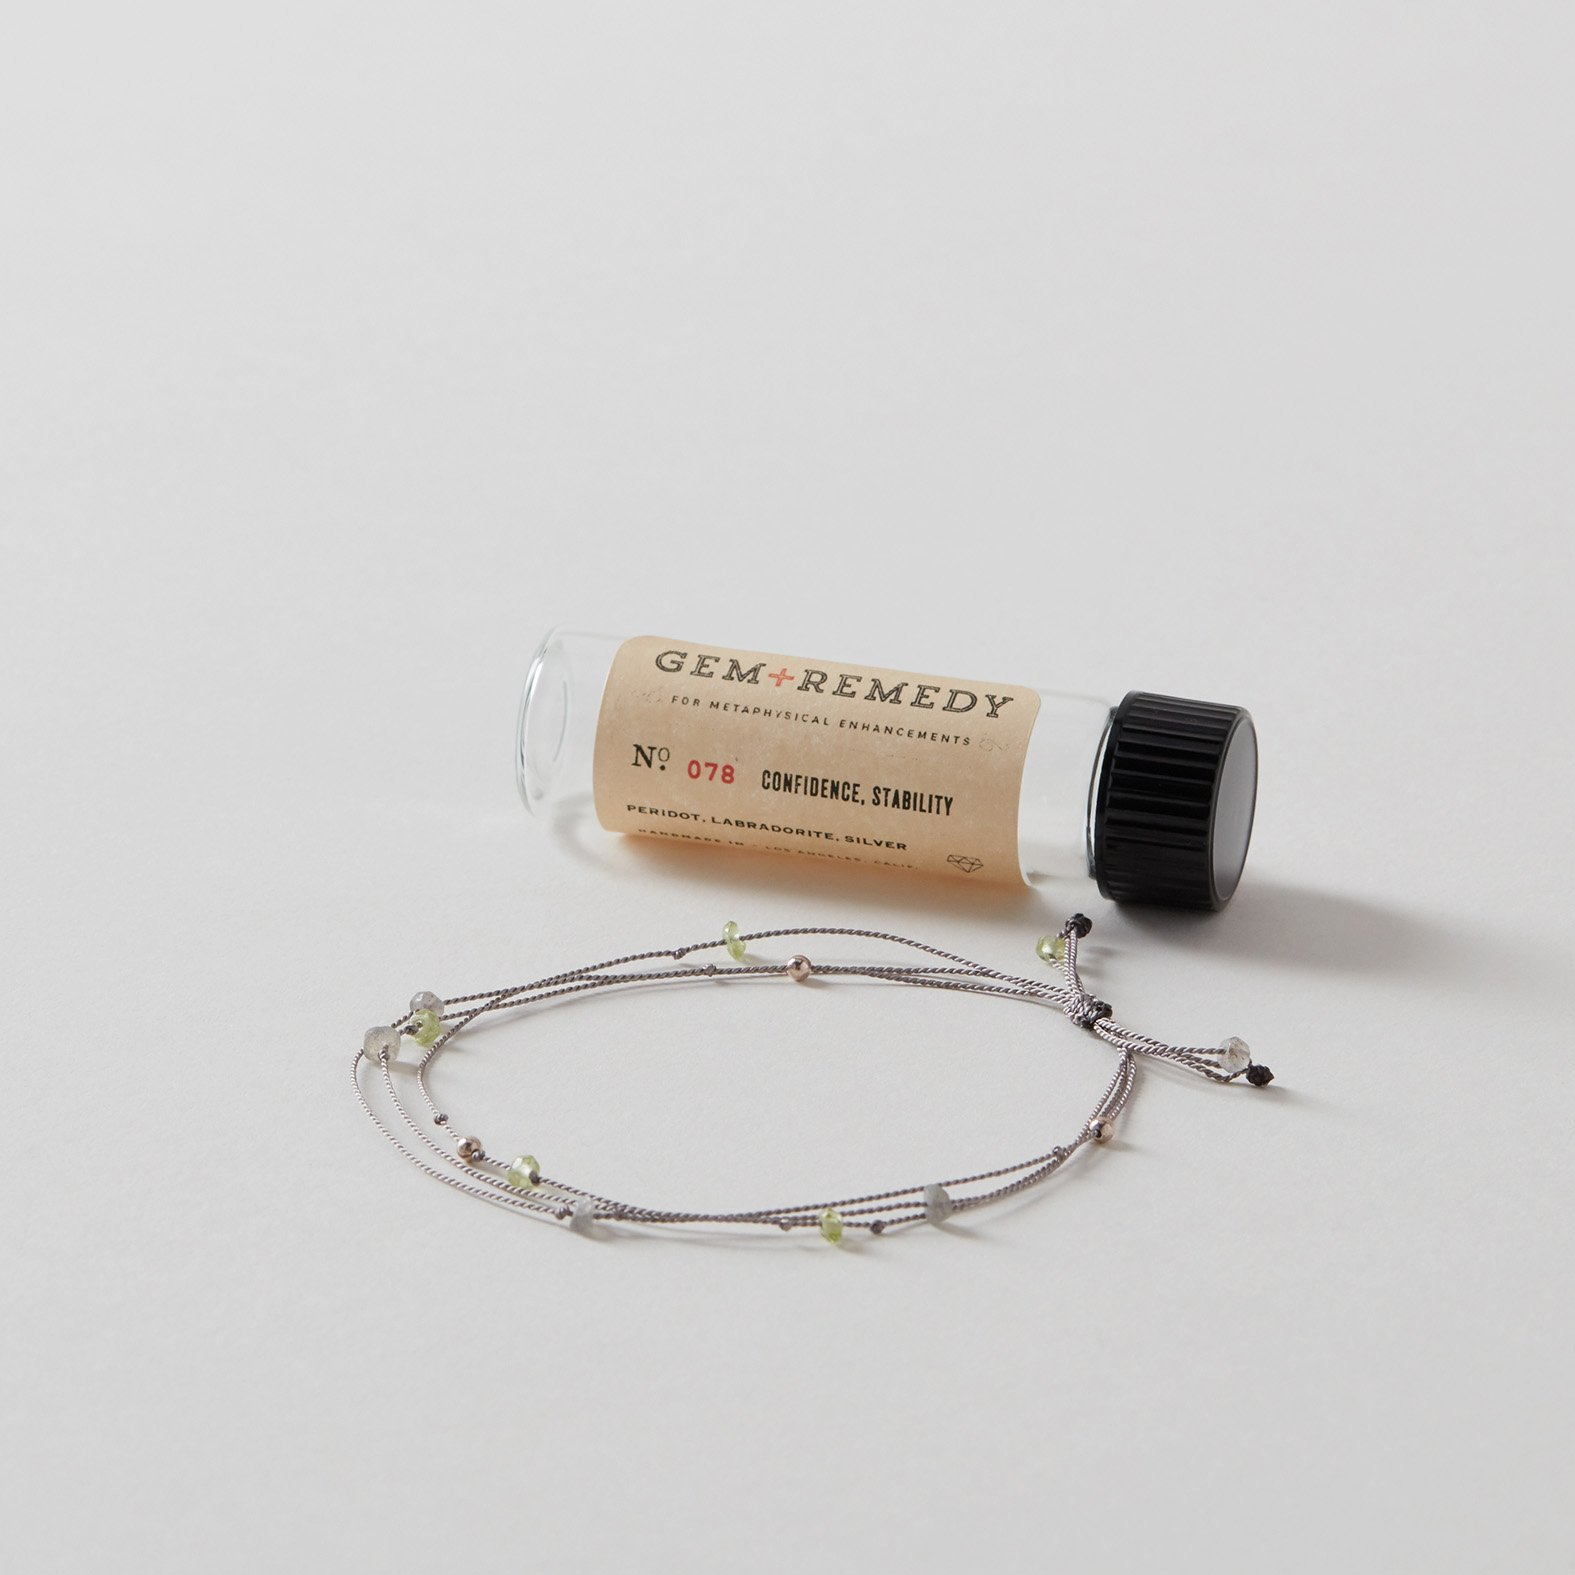 Gem Remedy Confidence + Stability Bracelet